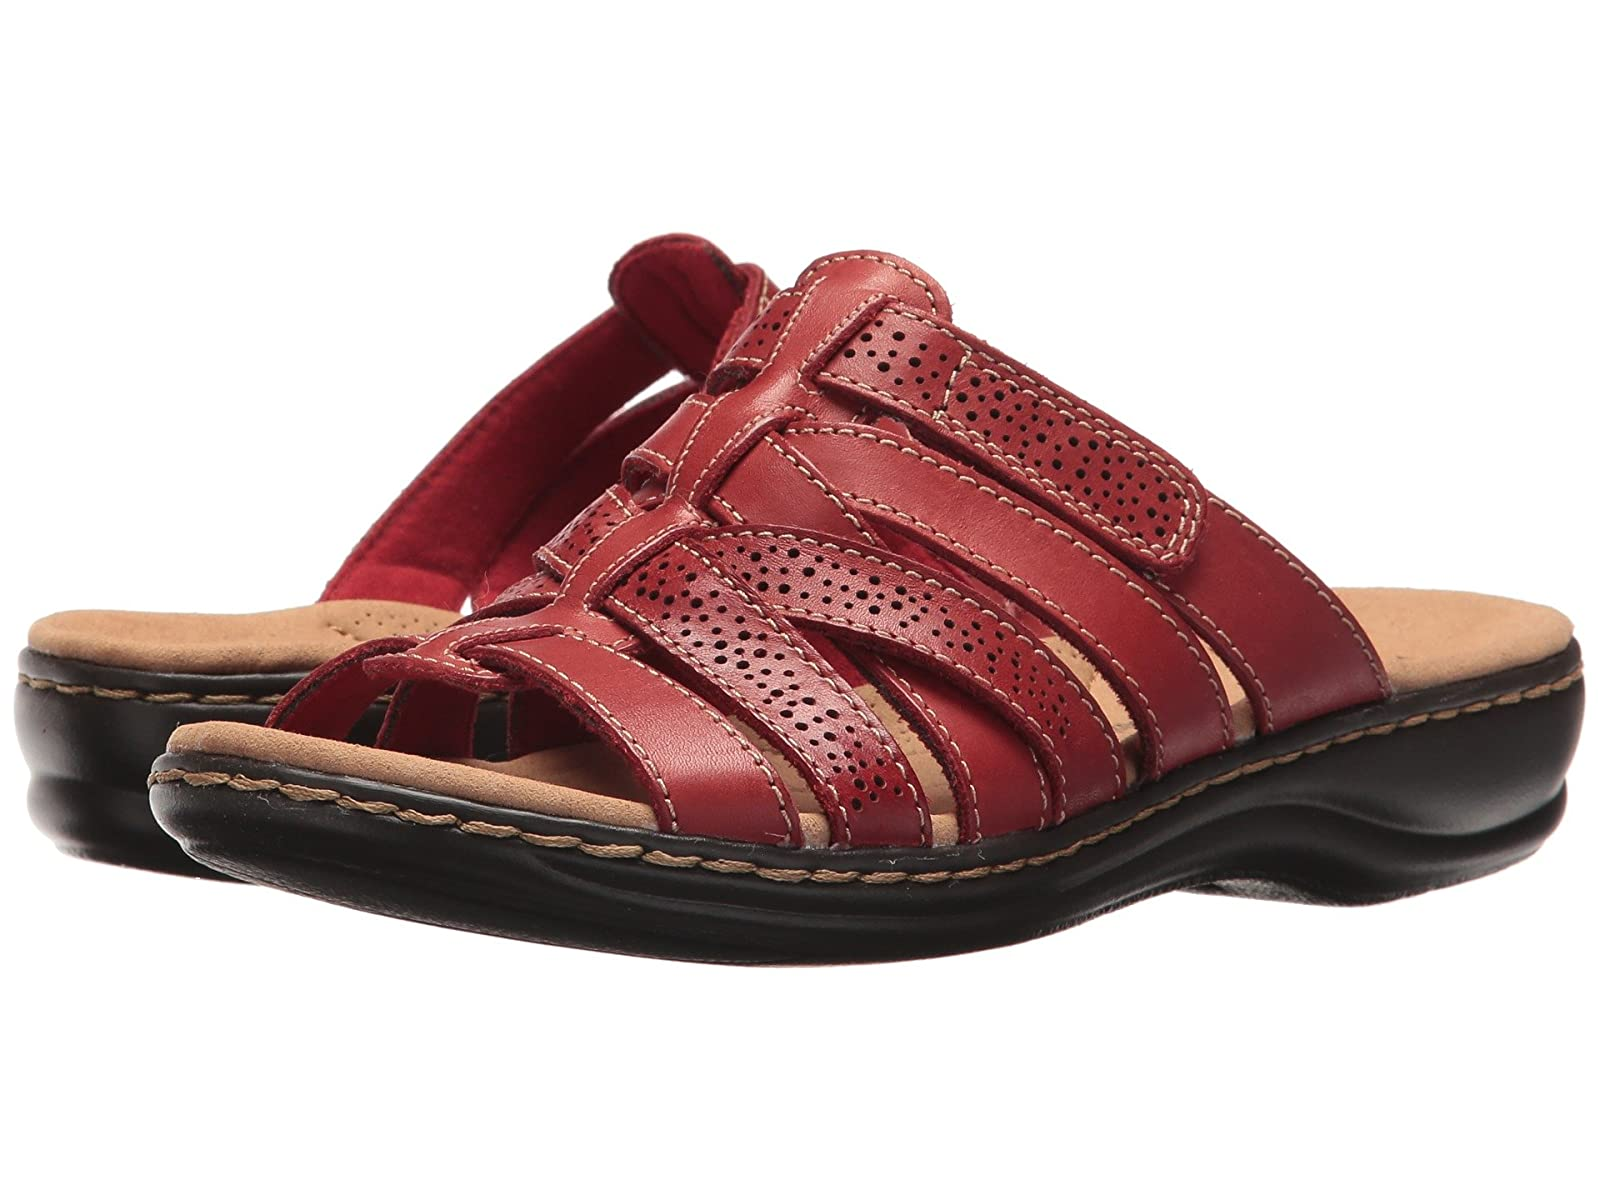 Clarks Leisa FieldComfortable and distinctive shoes